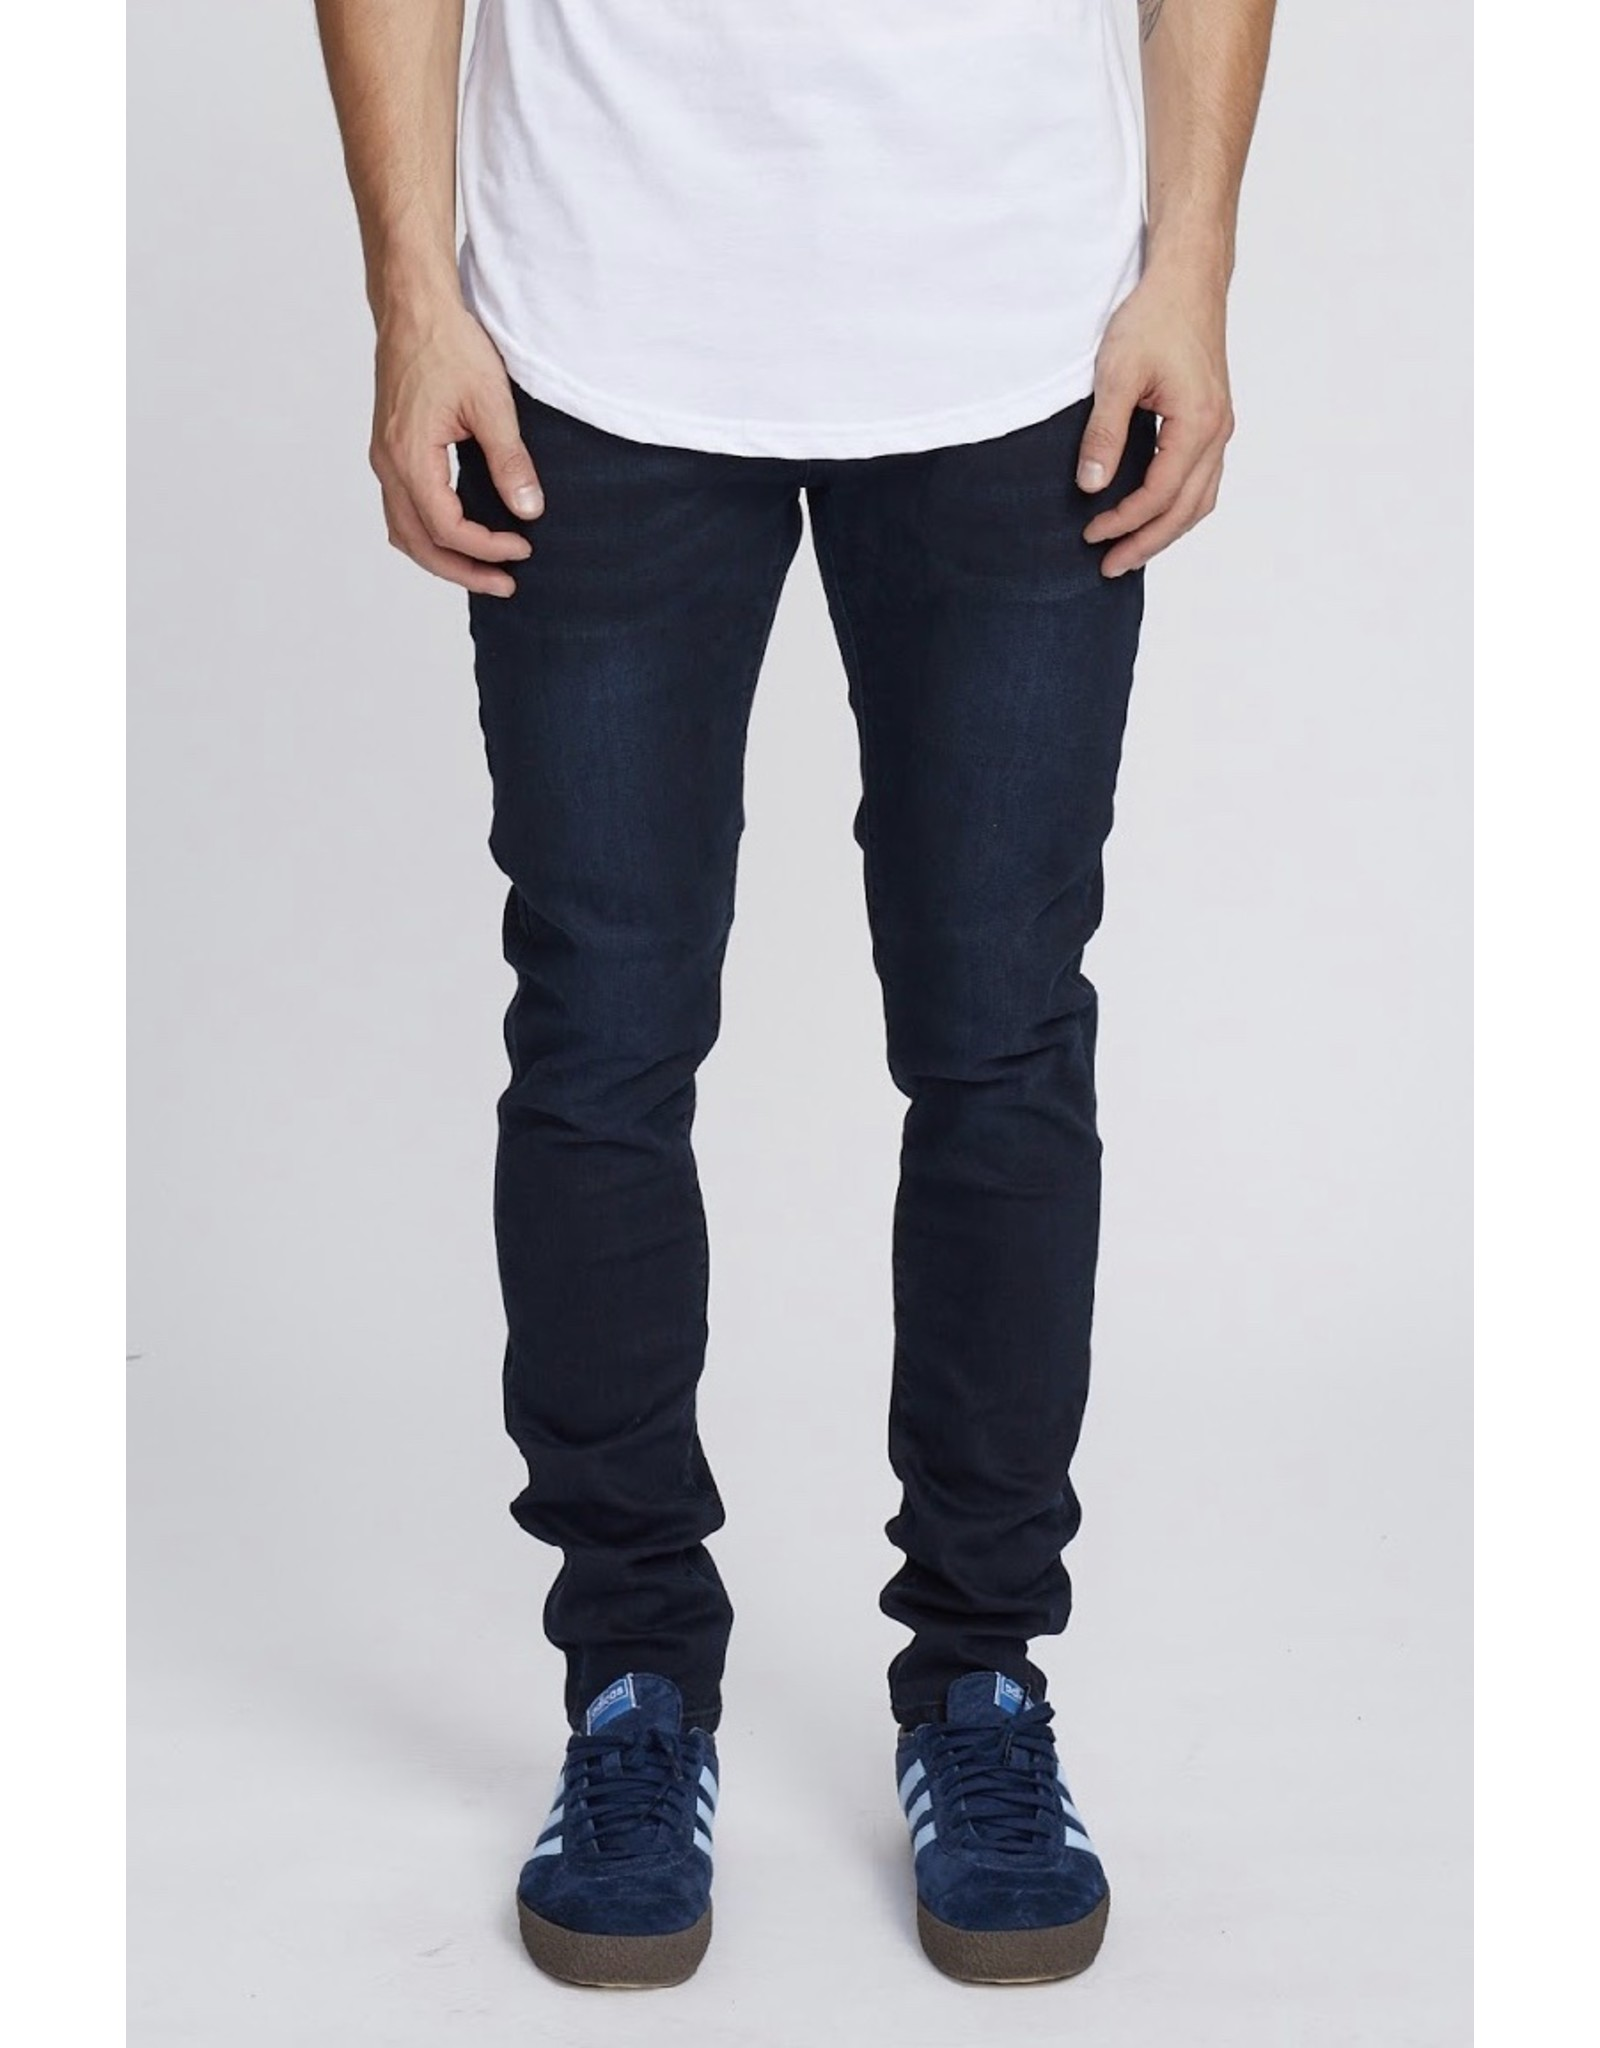 KUWALLA TEE KUWALLA TEE OVER DYE ESSENTIAL DENIM